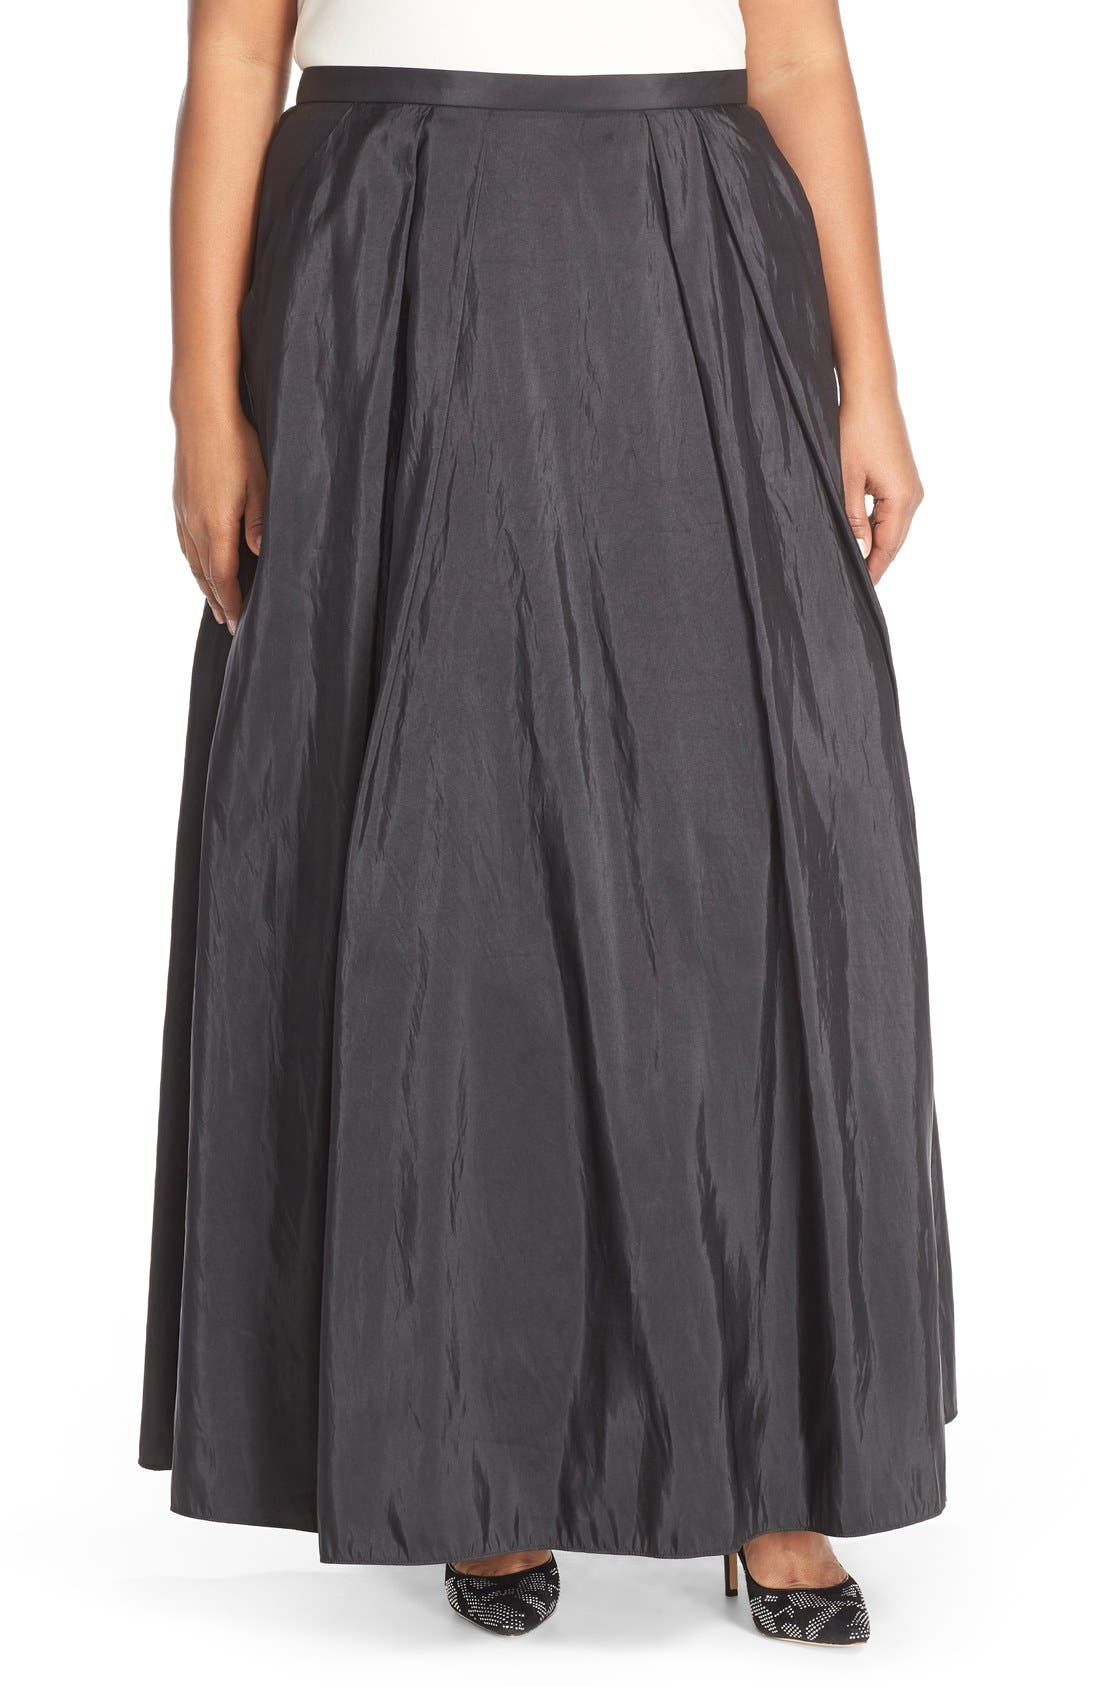 Alex Evenings Taffeta Ballgown Skirt (Plus Size)